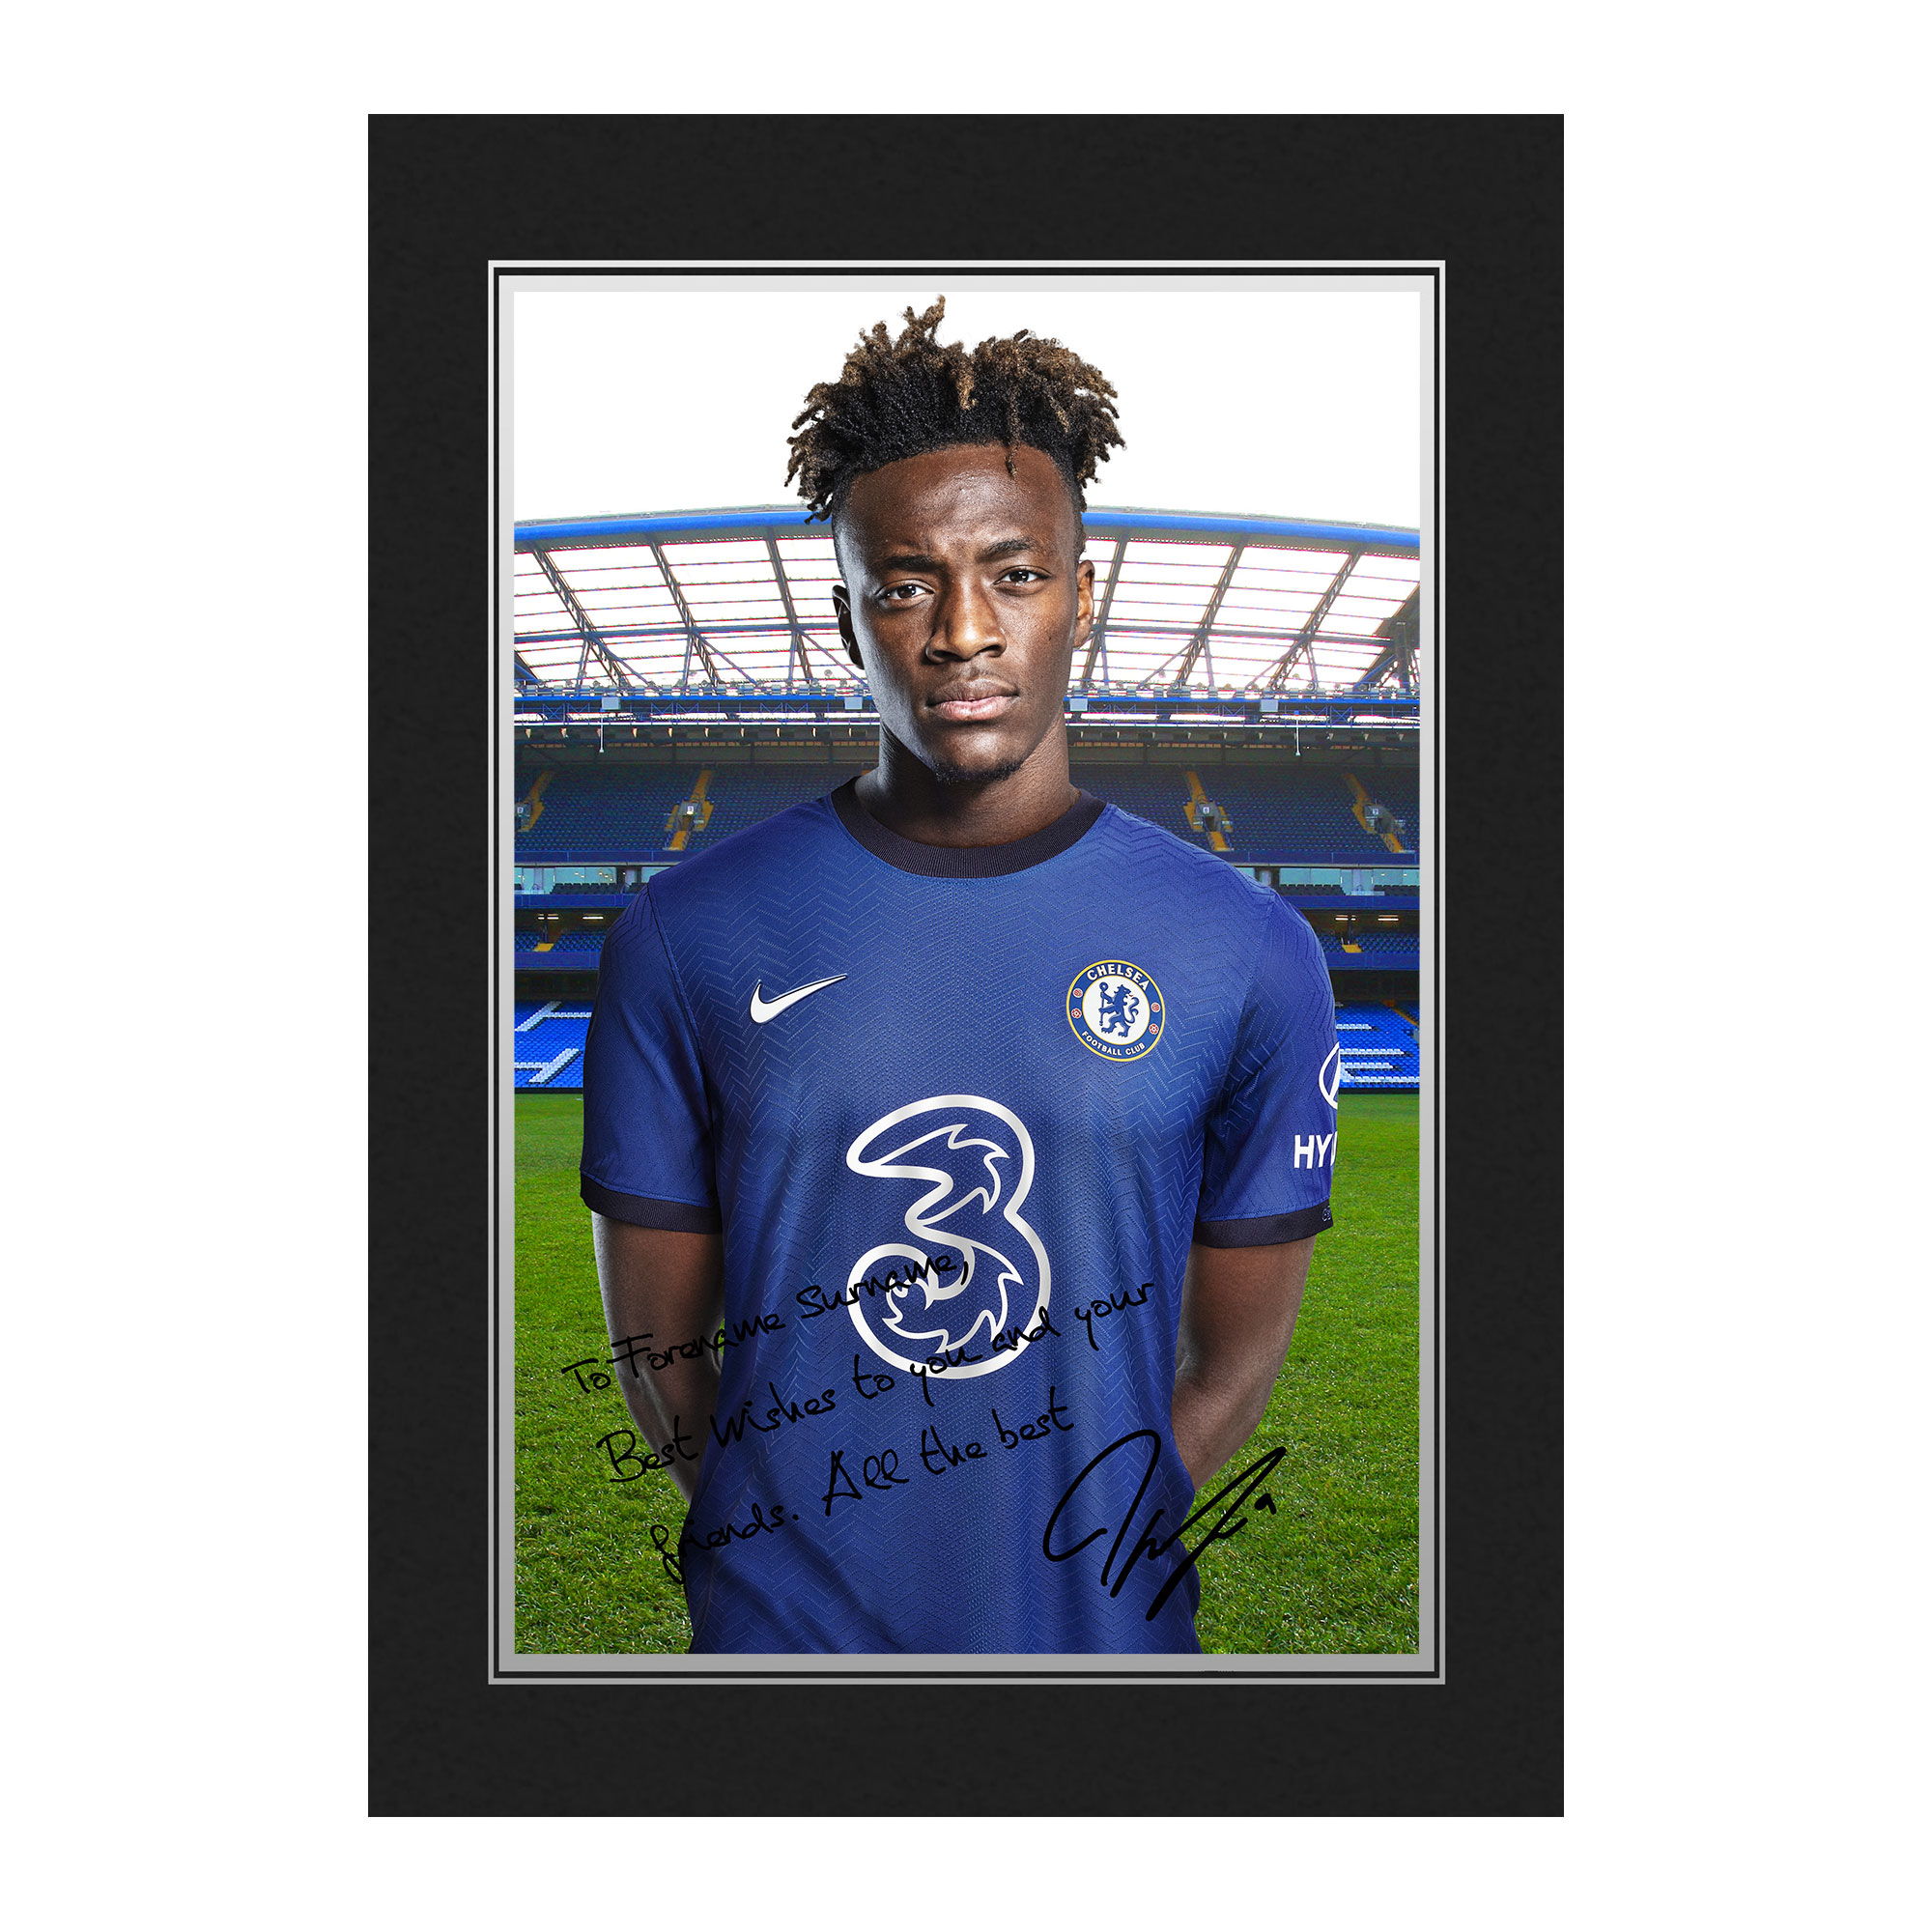 Chelsea FC Abraham Autograph Photo Folder